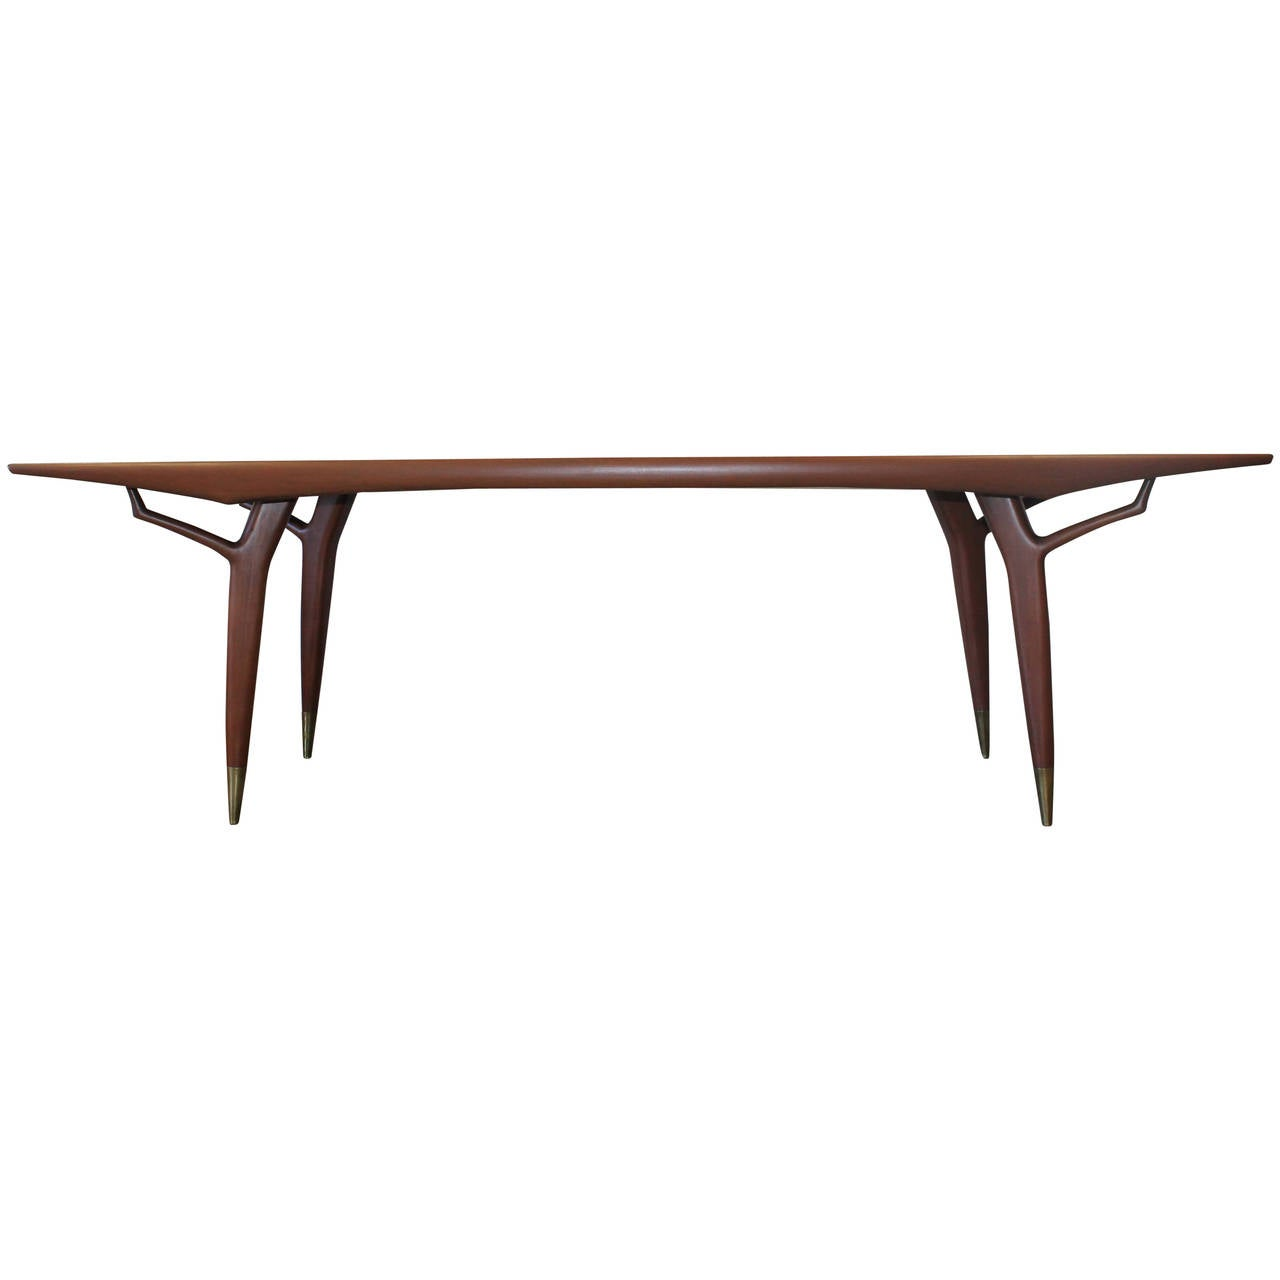 eugenio escudero sculptural 8ft dining table 1950s at 1stdibs